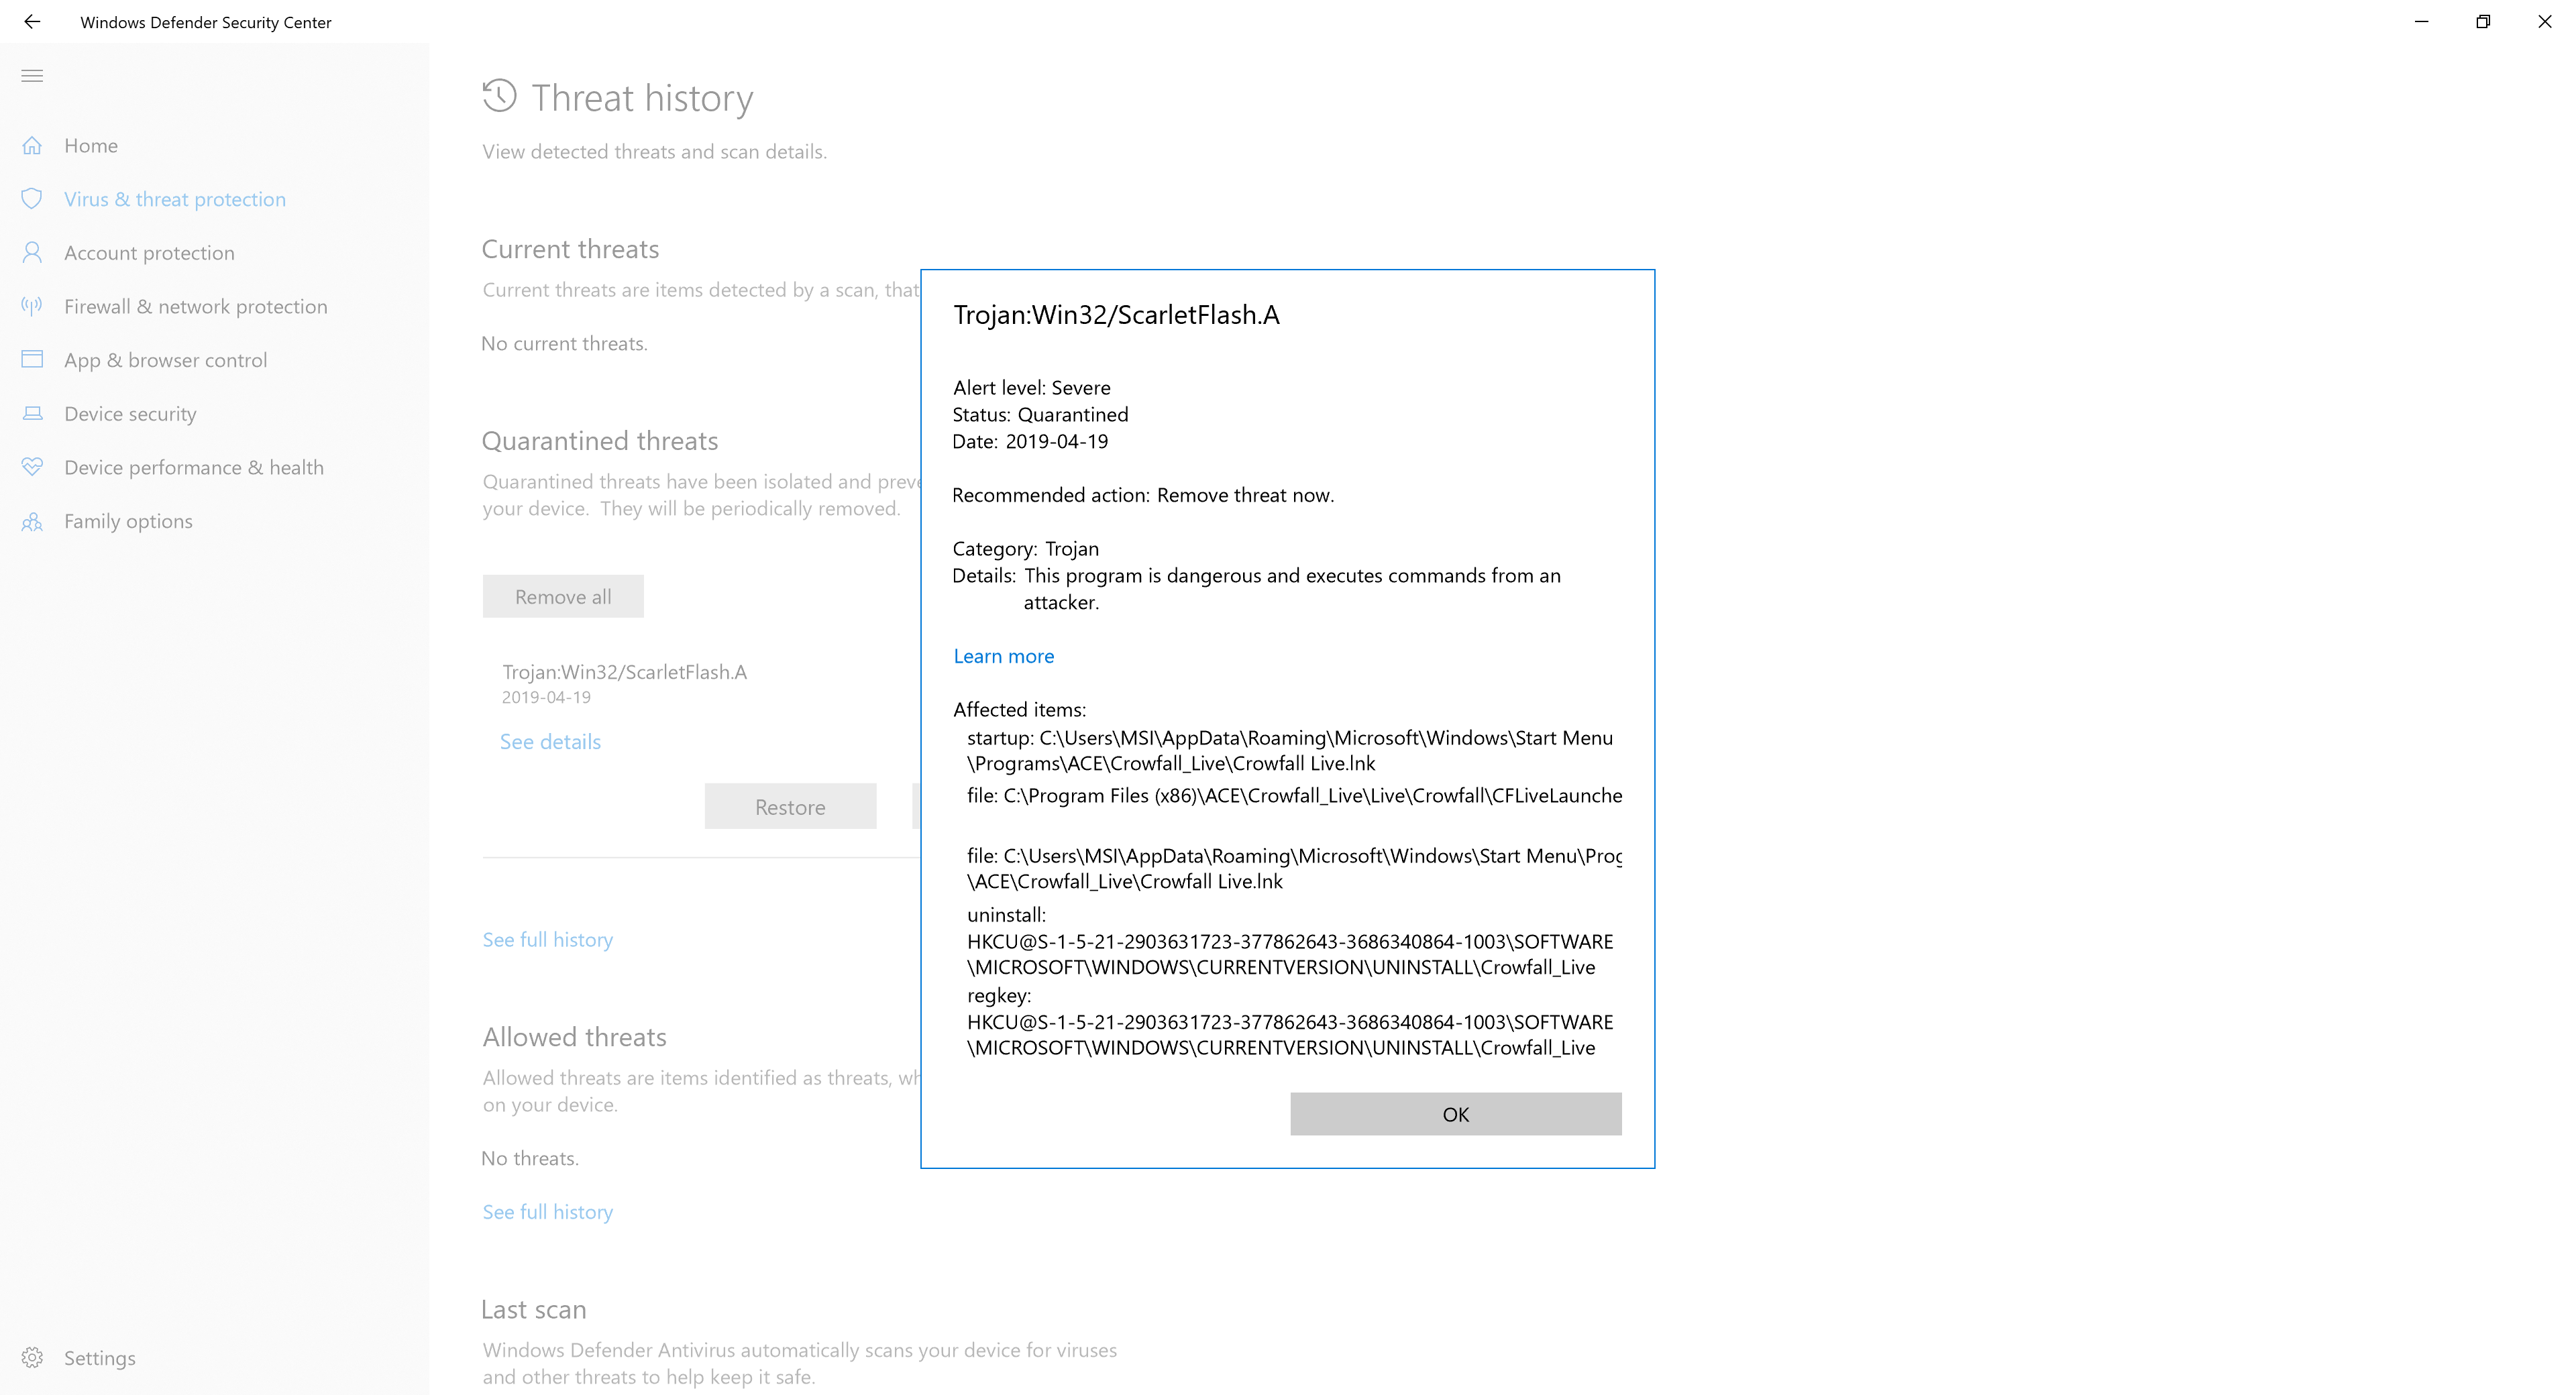 Windows-Defender-Security-Centre-2019-04